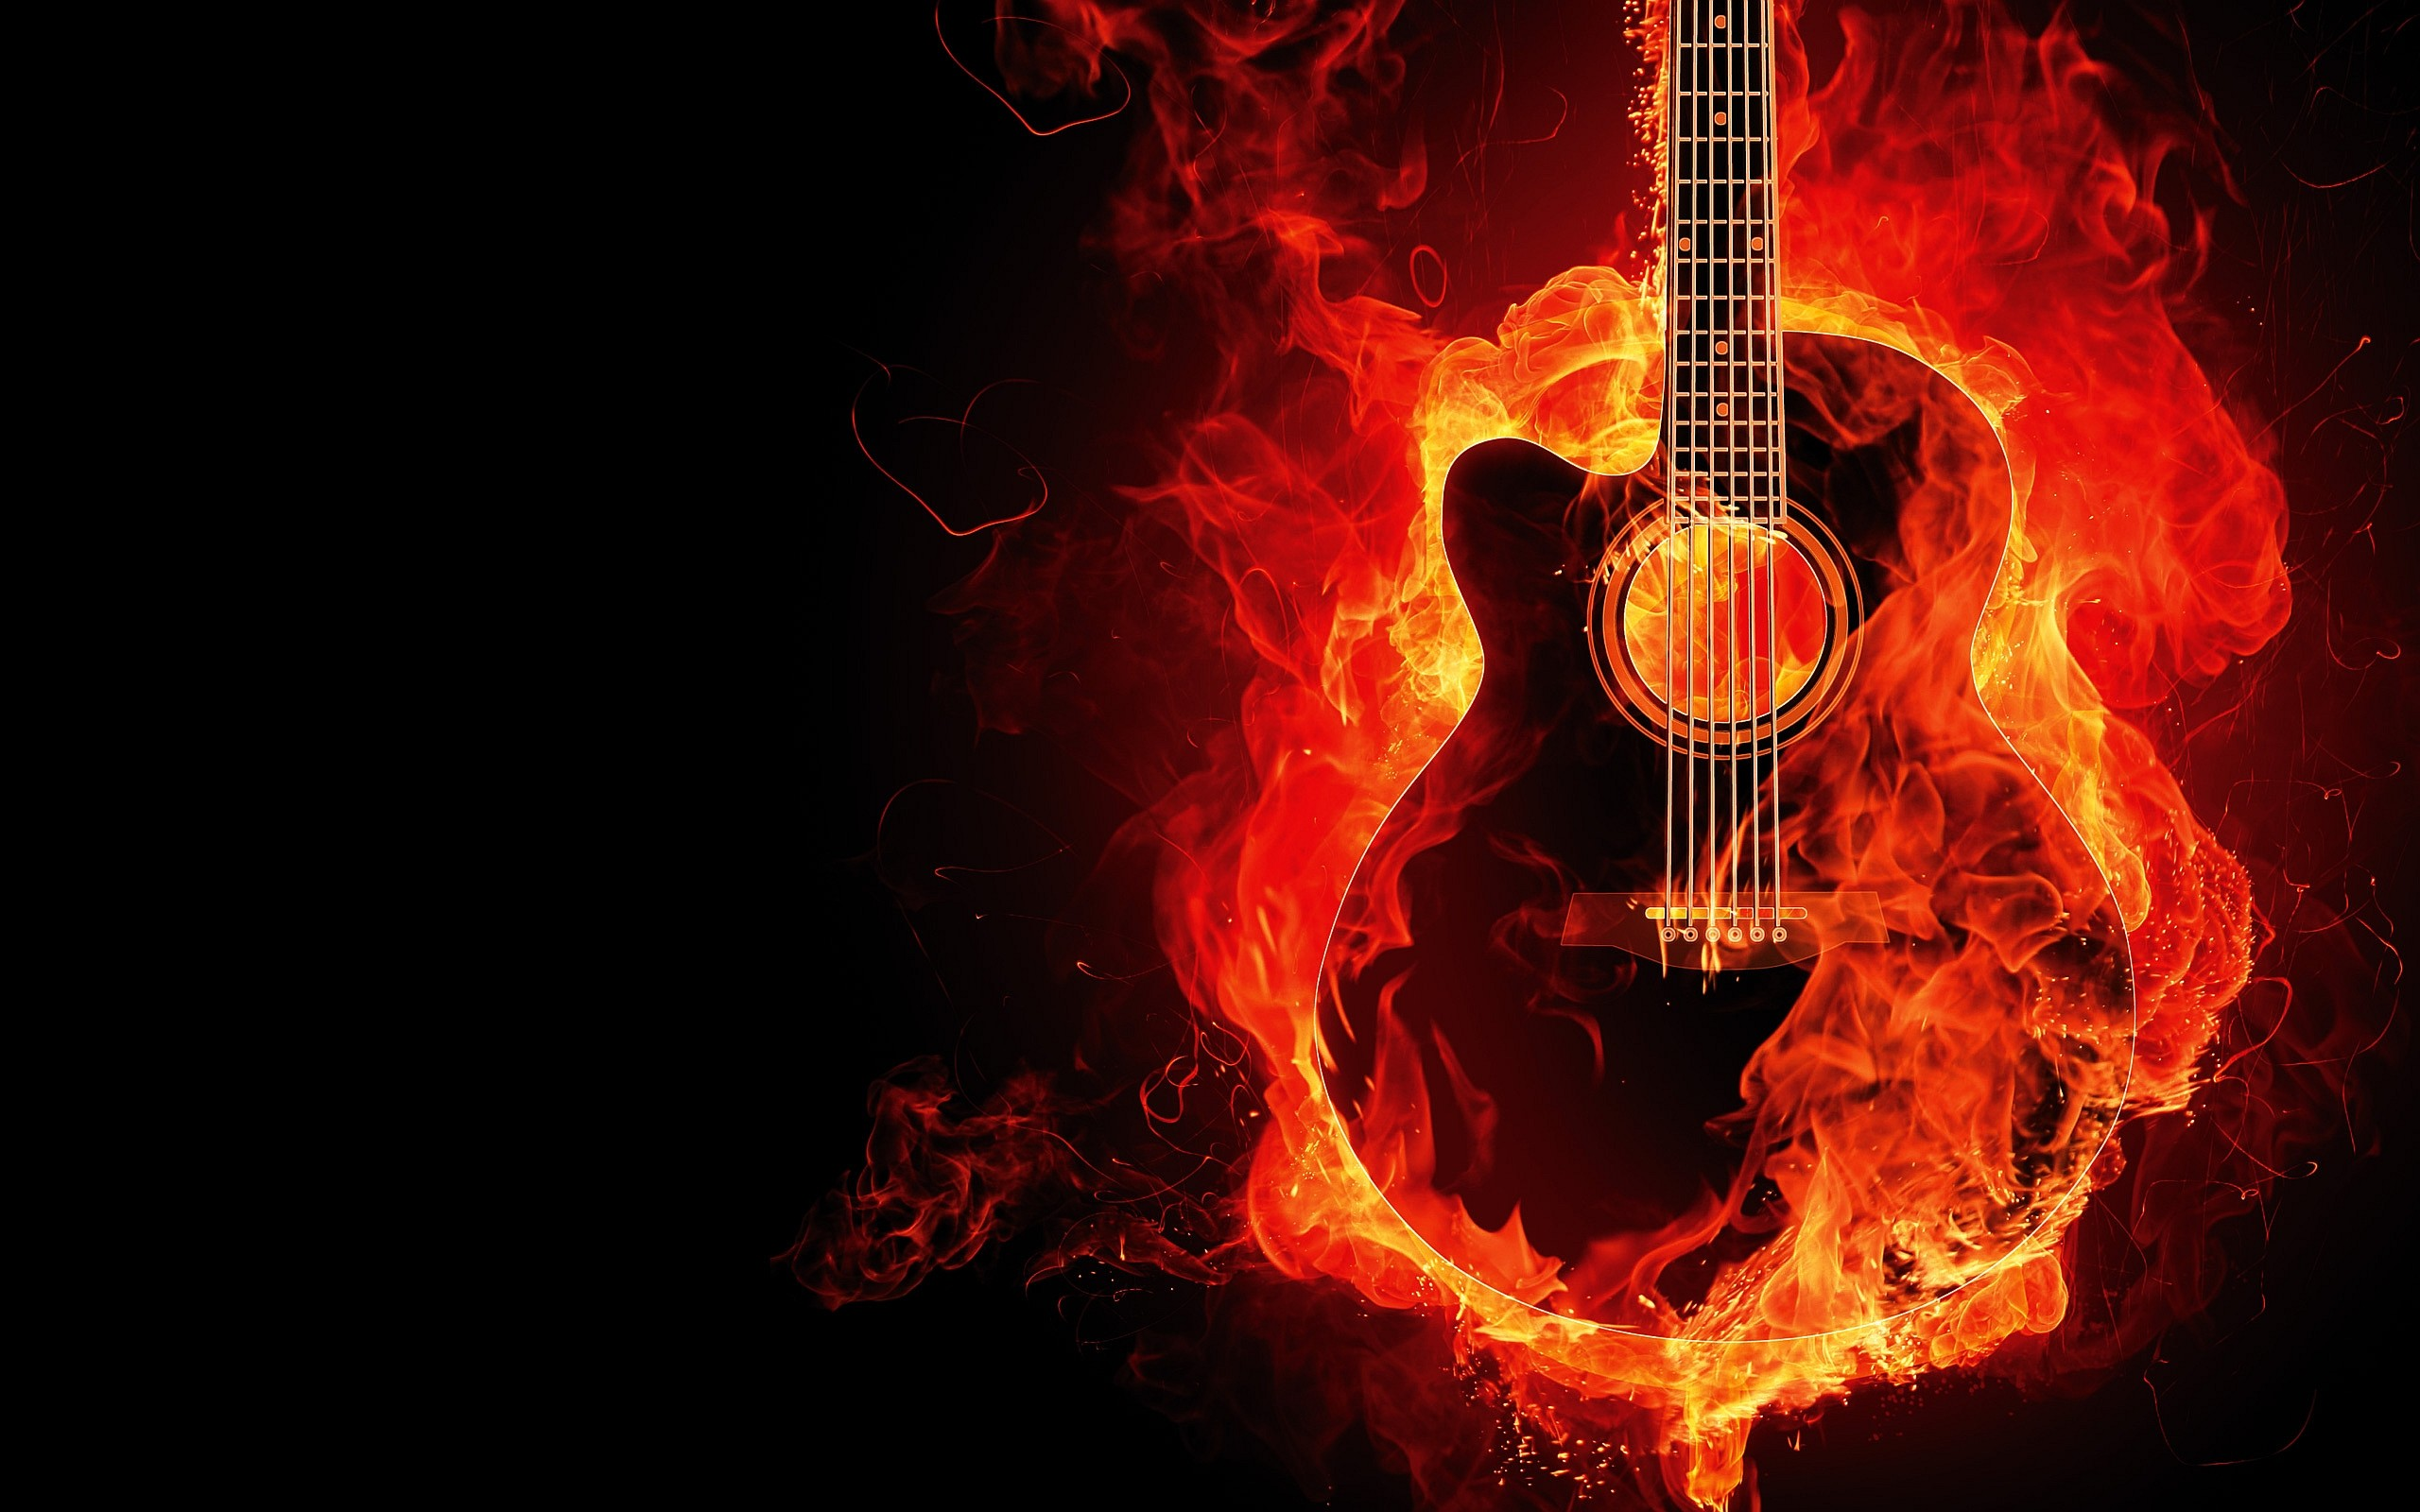 Awesome Guitar Fire Wallpaper HD 2818 Wallpaper with .